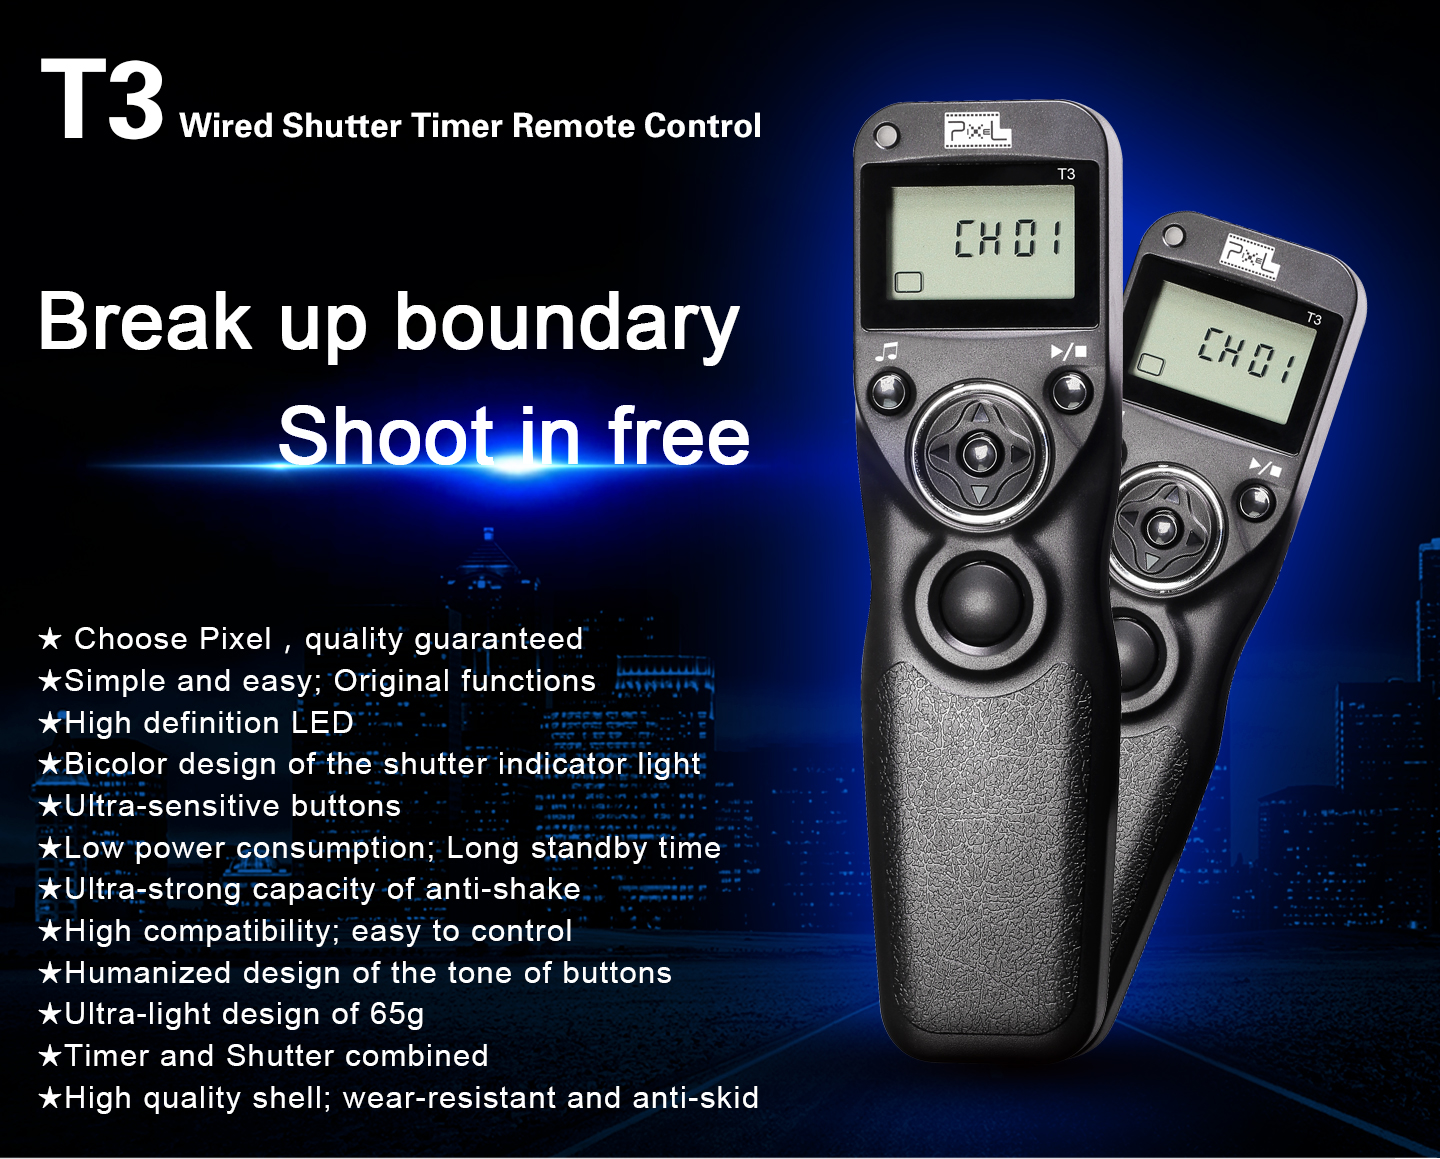 T3 Wired Shutter Timer Remote Control